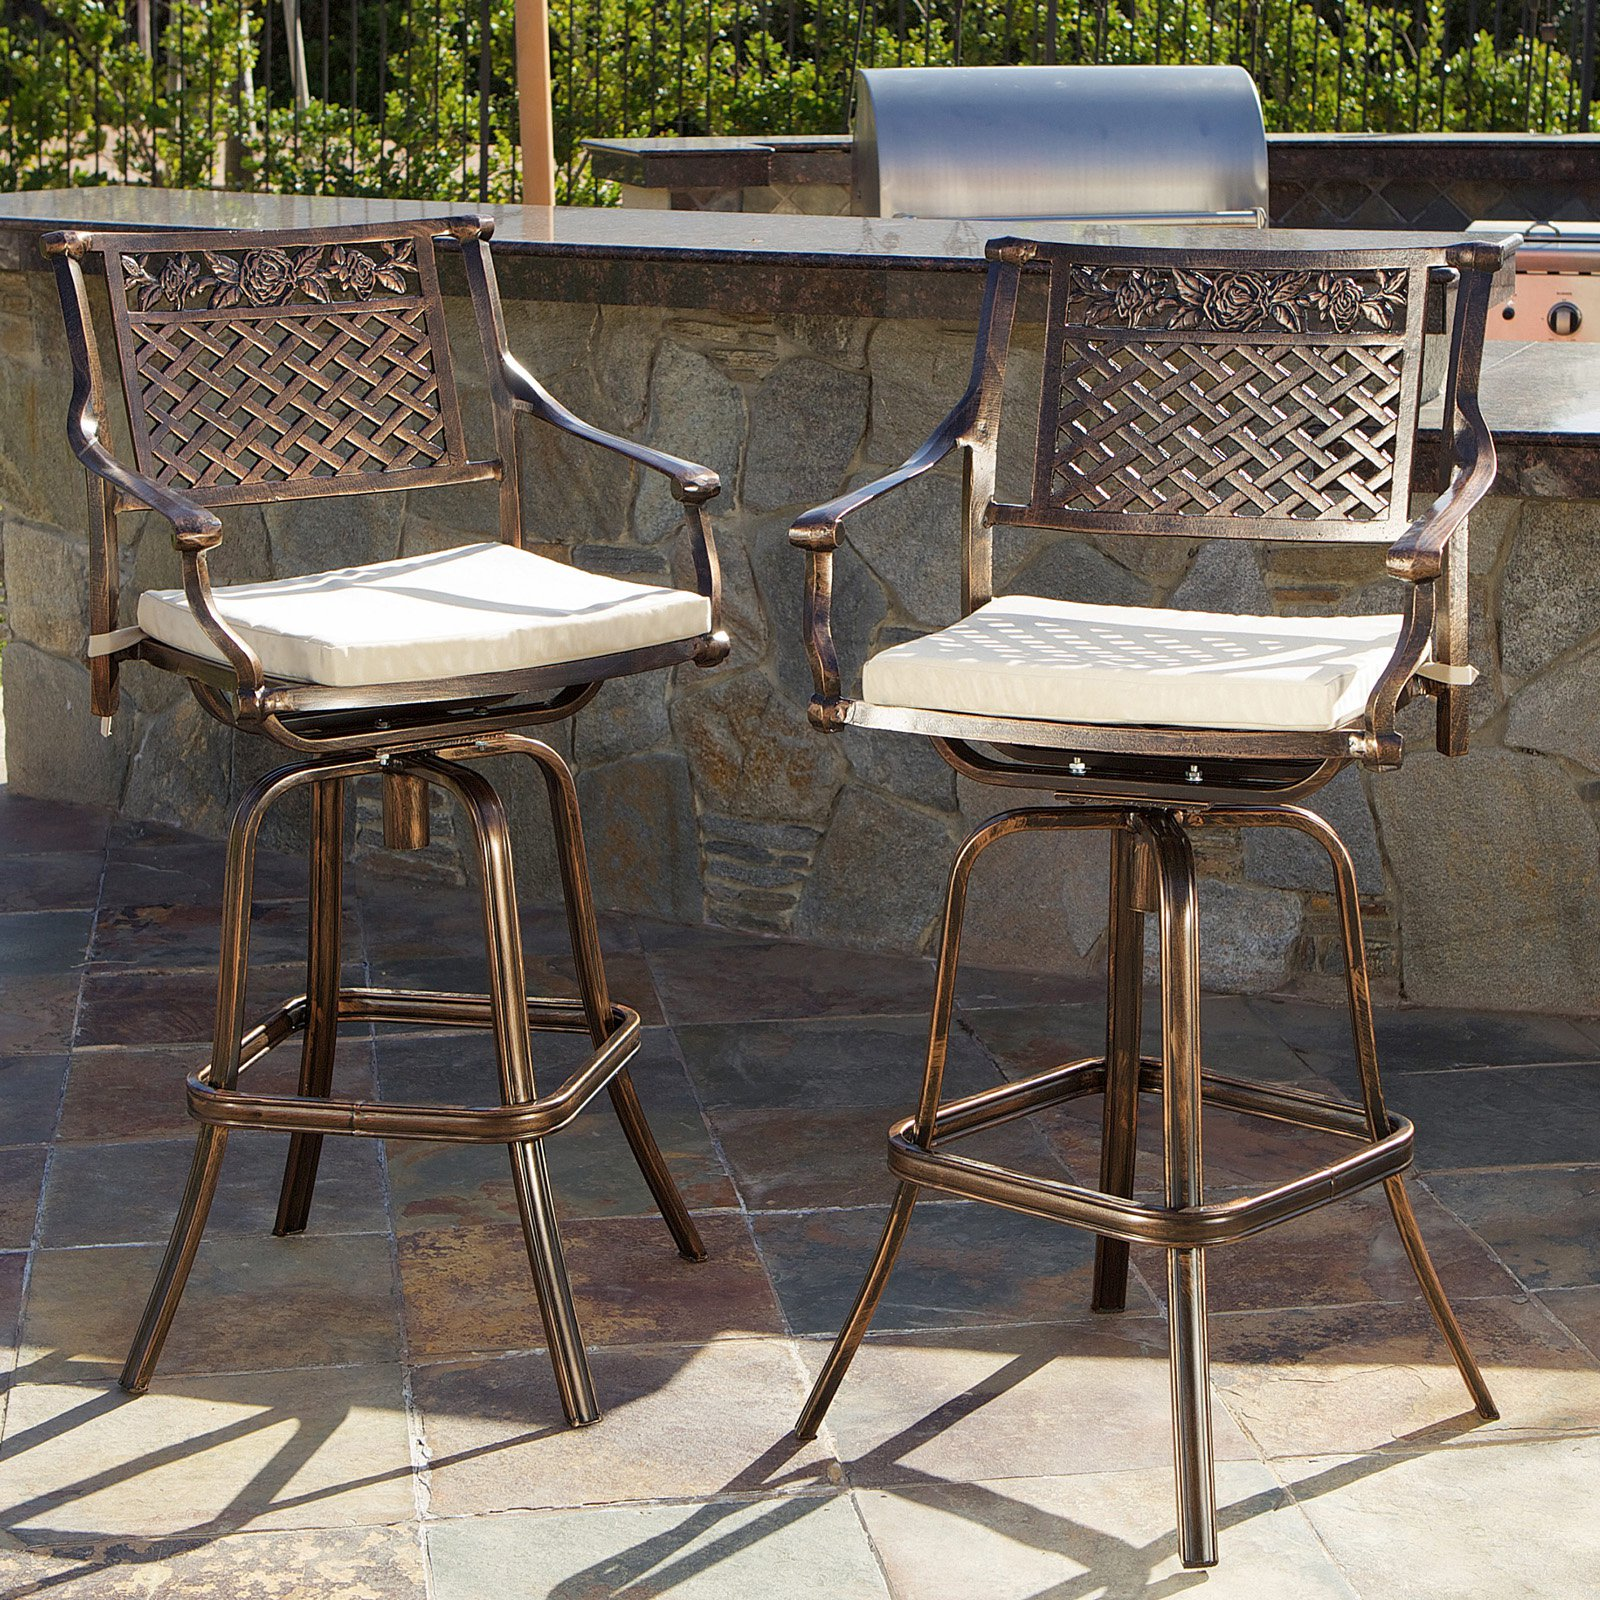 Best Selling Home Charlton 30 in. Bar Stool with Cushion Set of 2 by